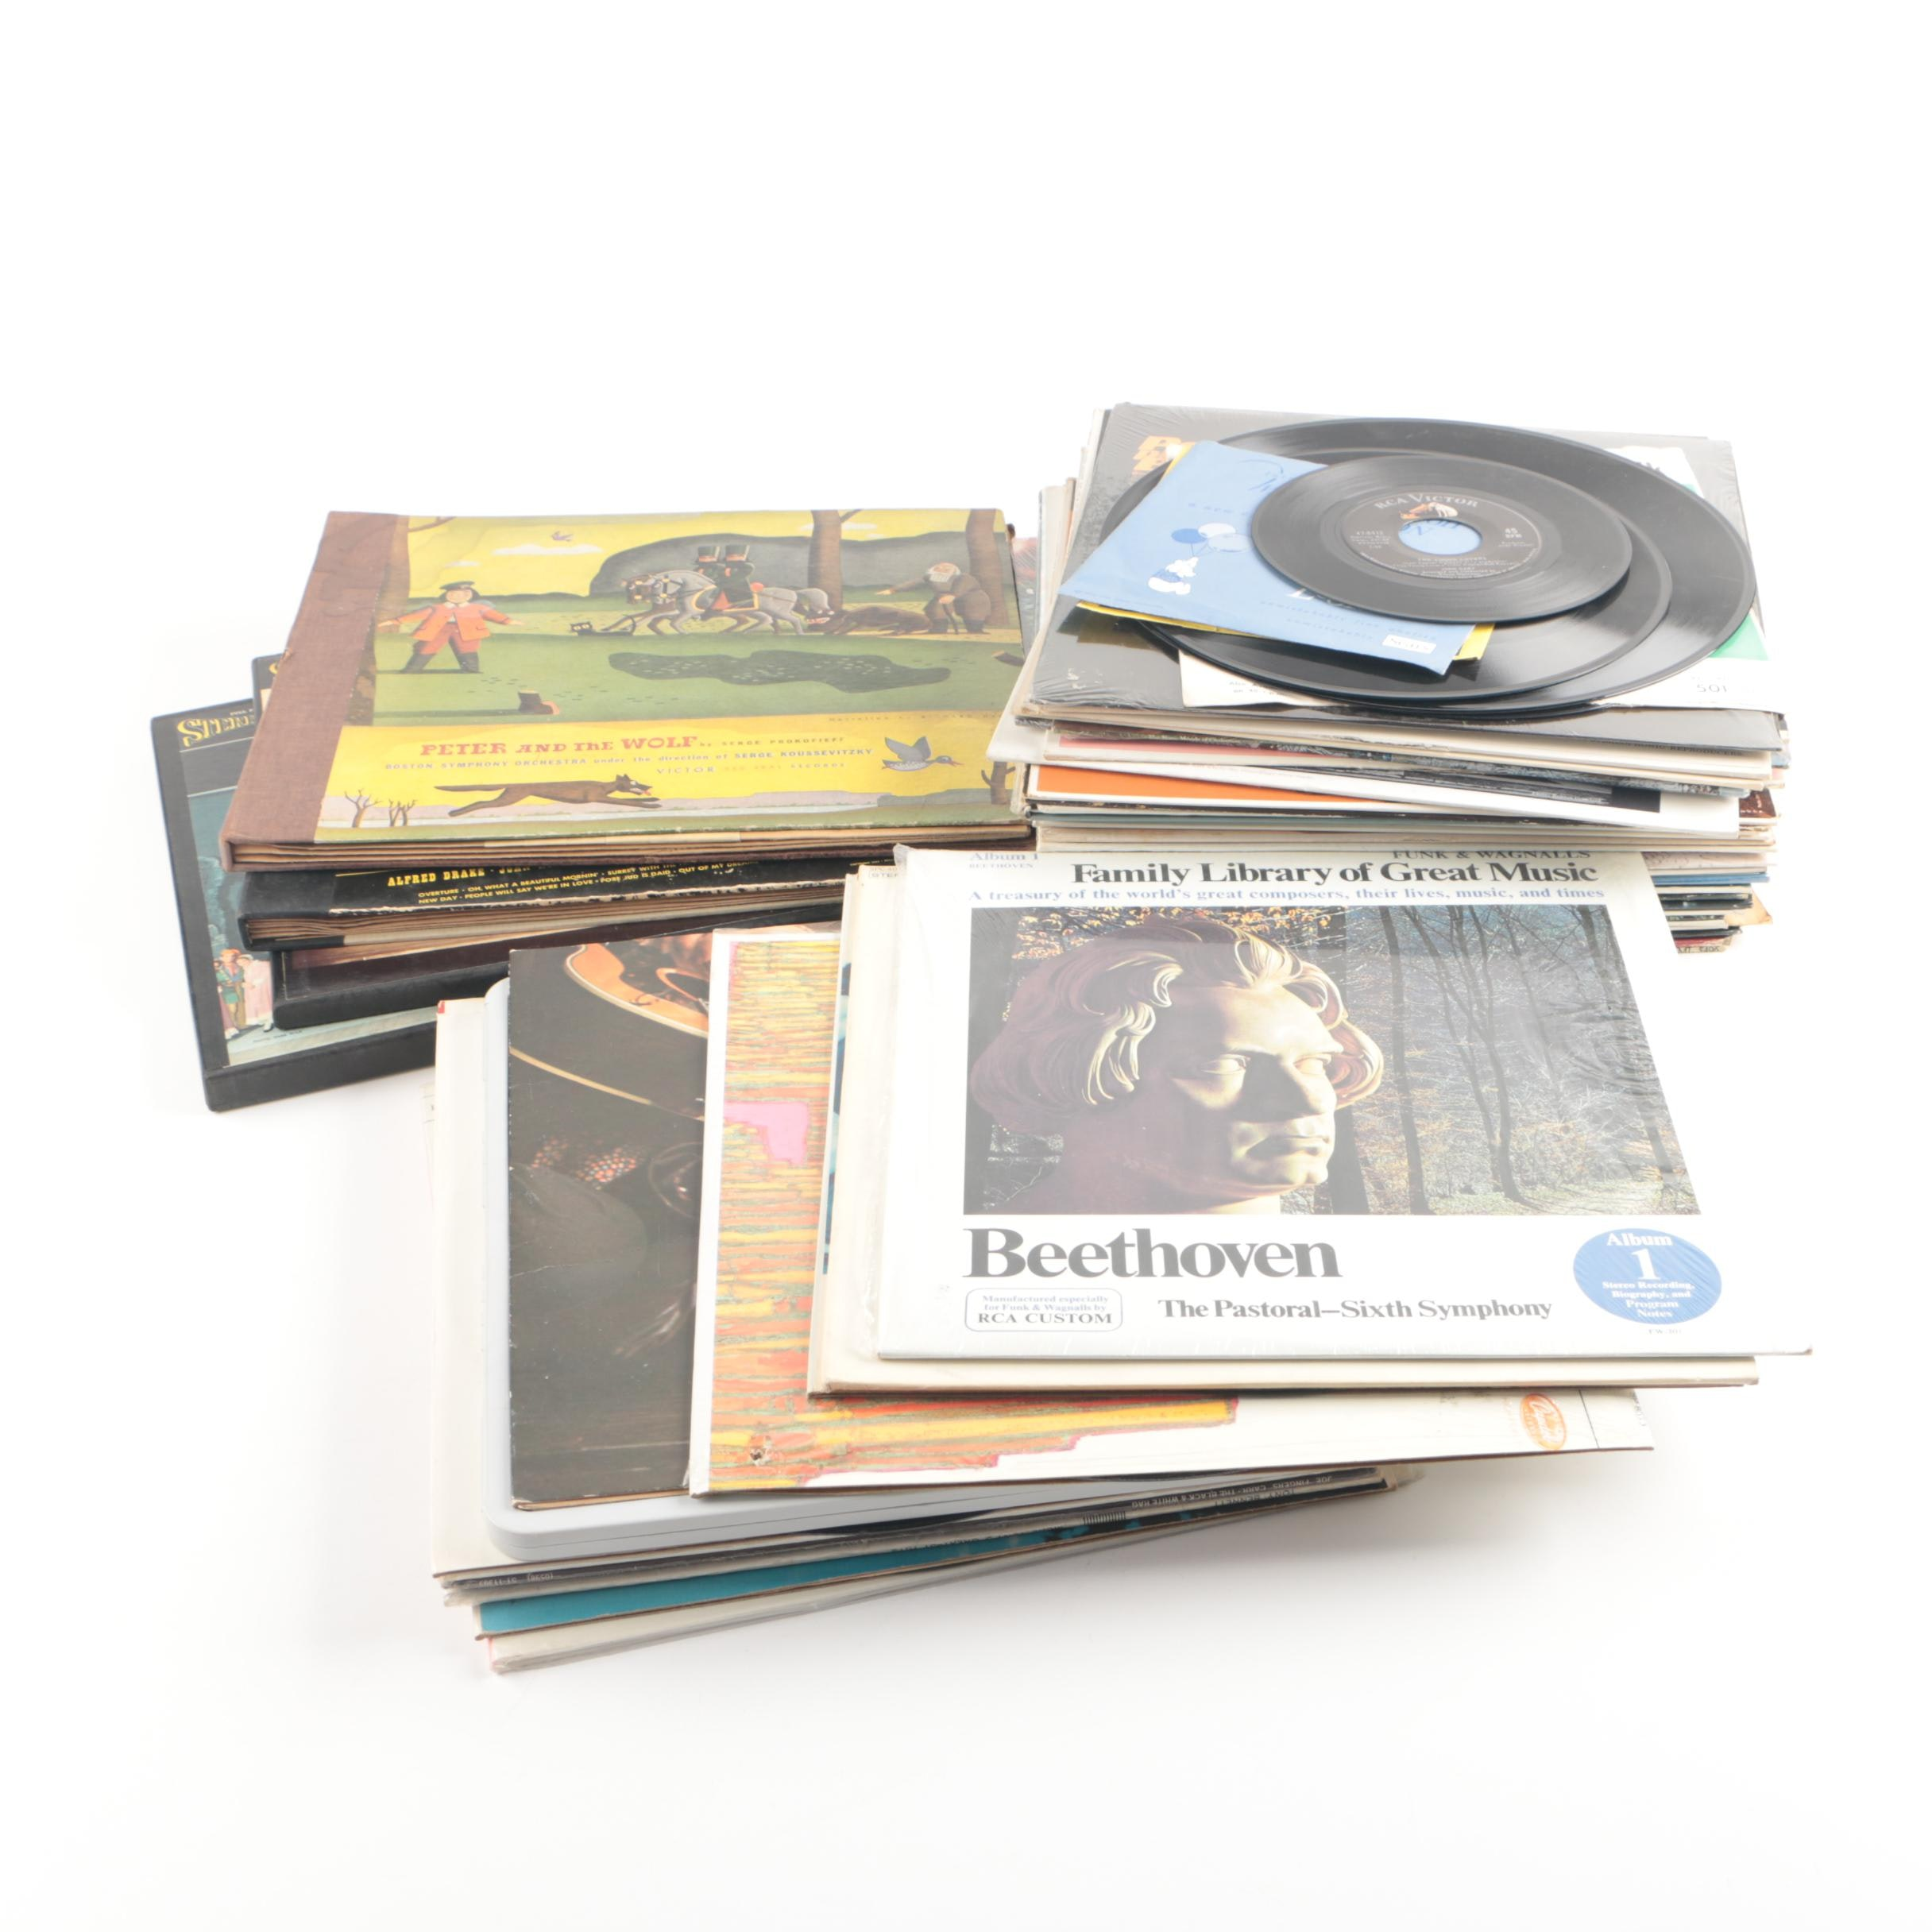 Broadway and Big Band Albums Including Rodgers and Hammerstein